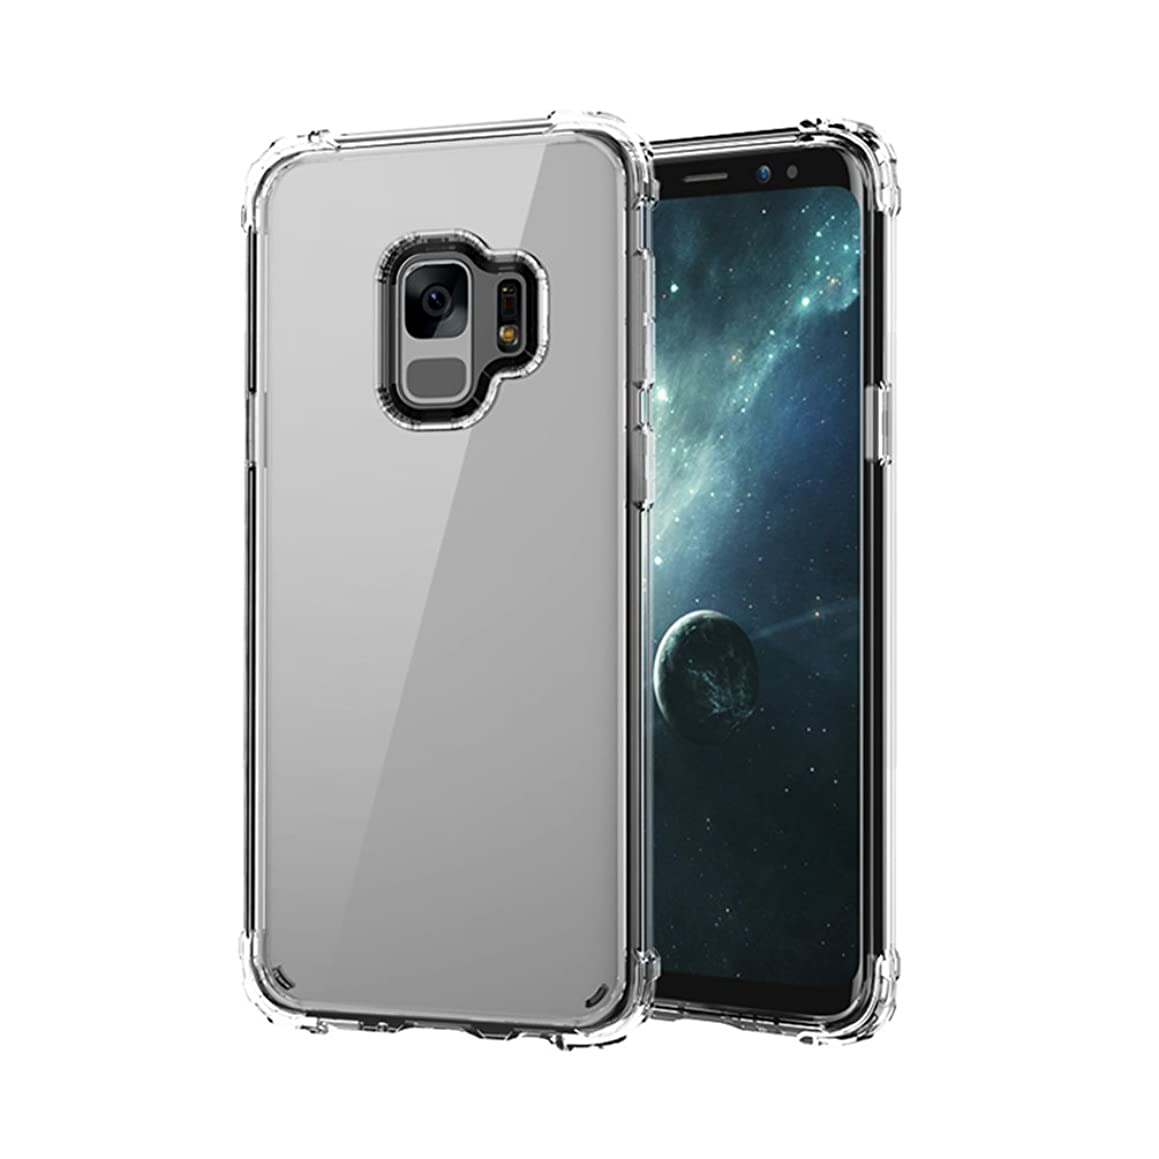 Hayder Galaxy S9 Case Clear Ultra Slim Scratch-Resistant Shockproof Protective Case Cover for Galaxy S9